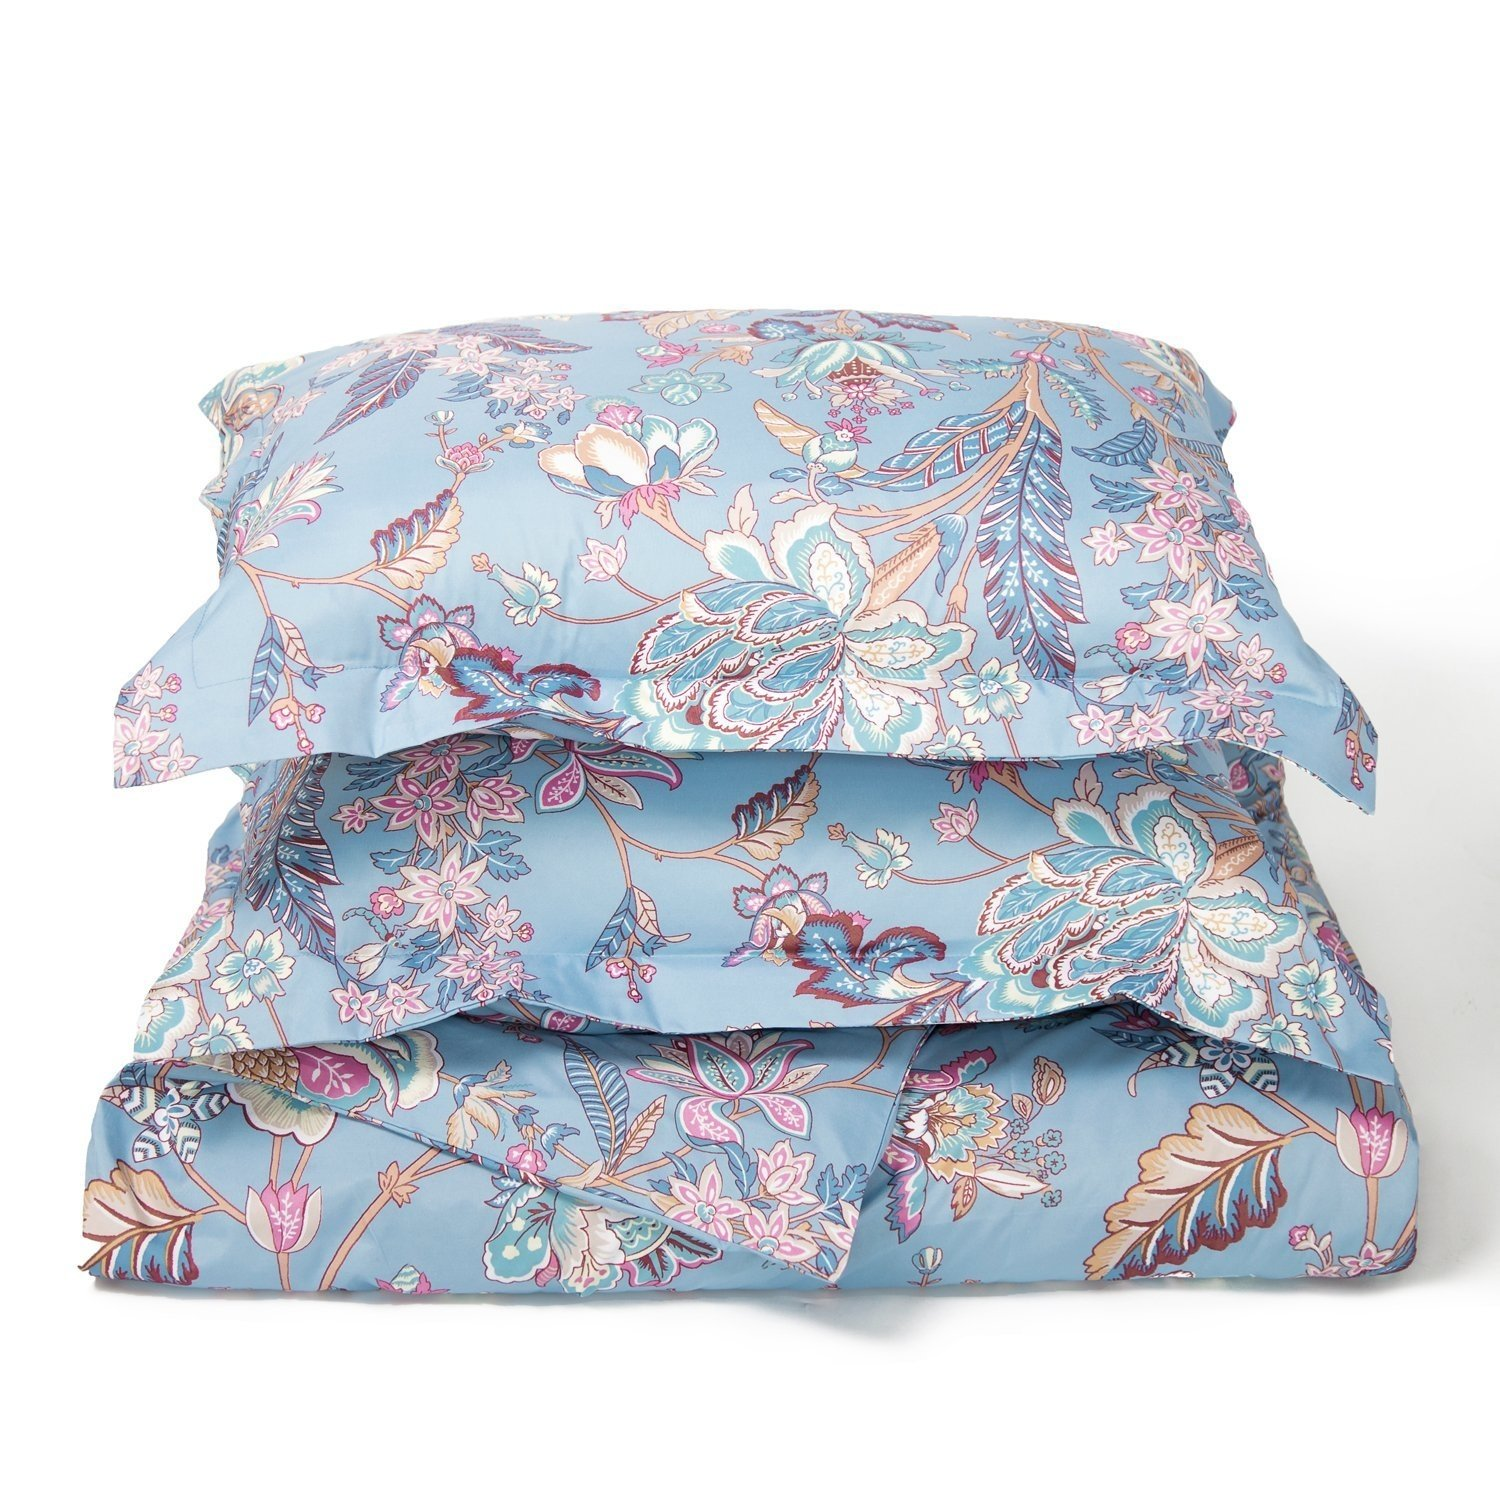 3 Piece Duvet Cover Set with Zipper Closure-Printed Blue Floral Reversible Design,Full/Queen (90\